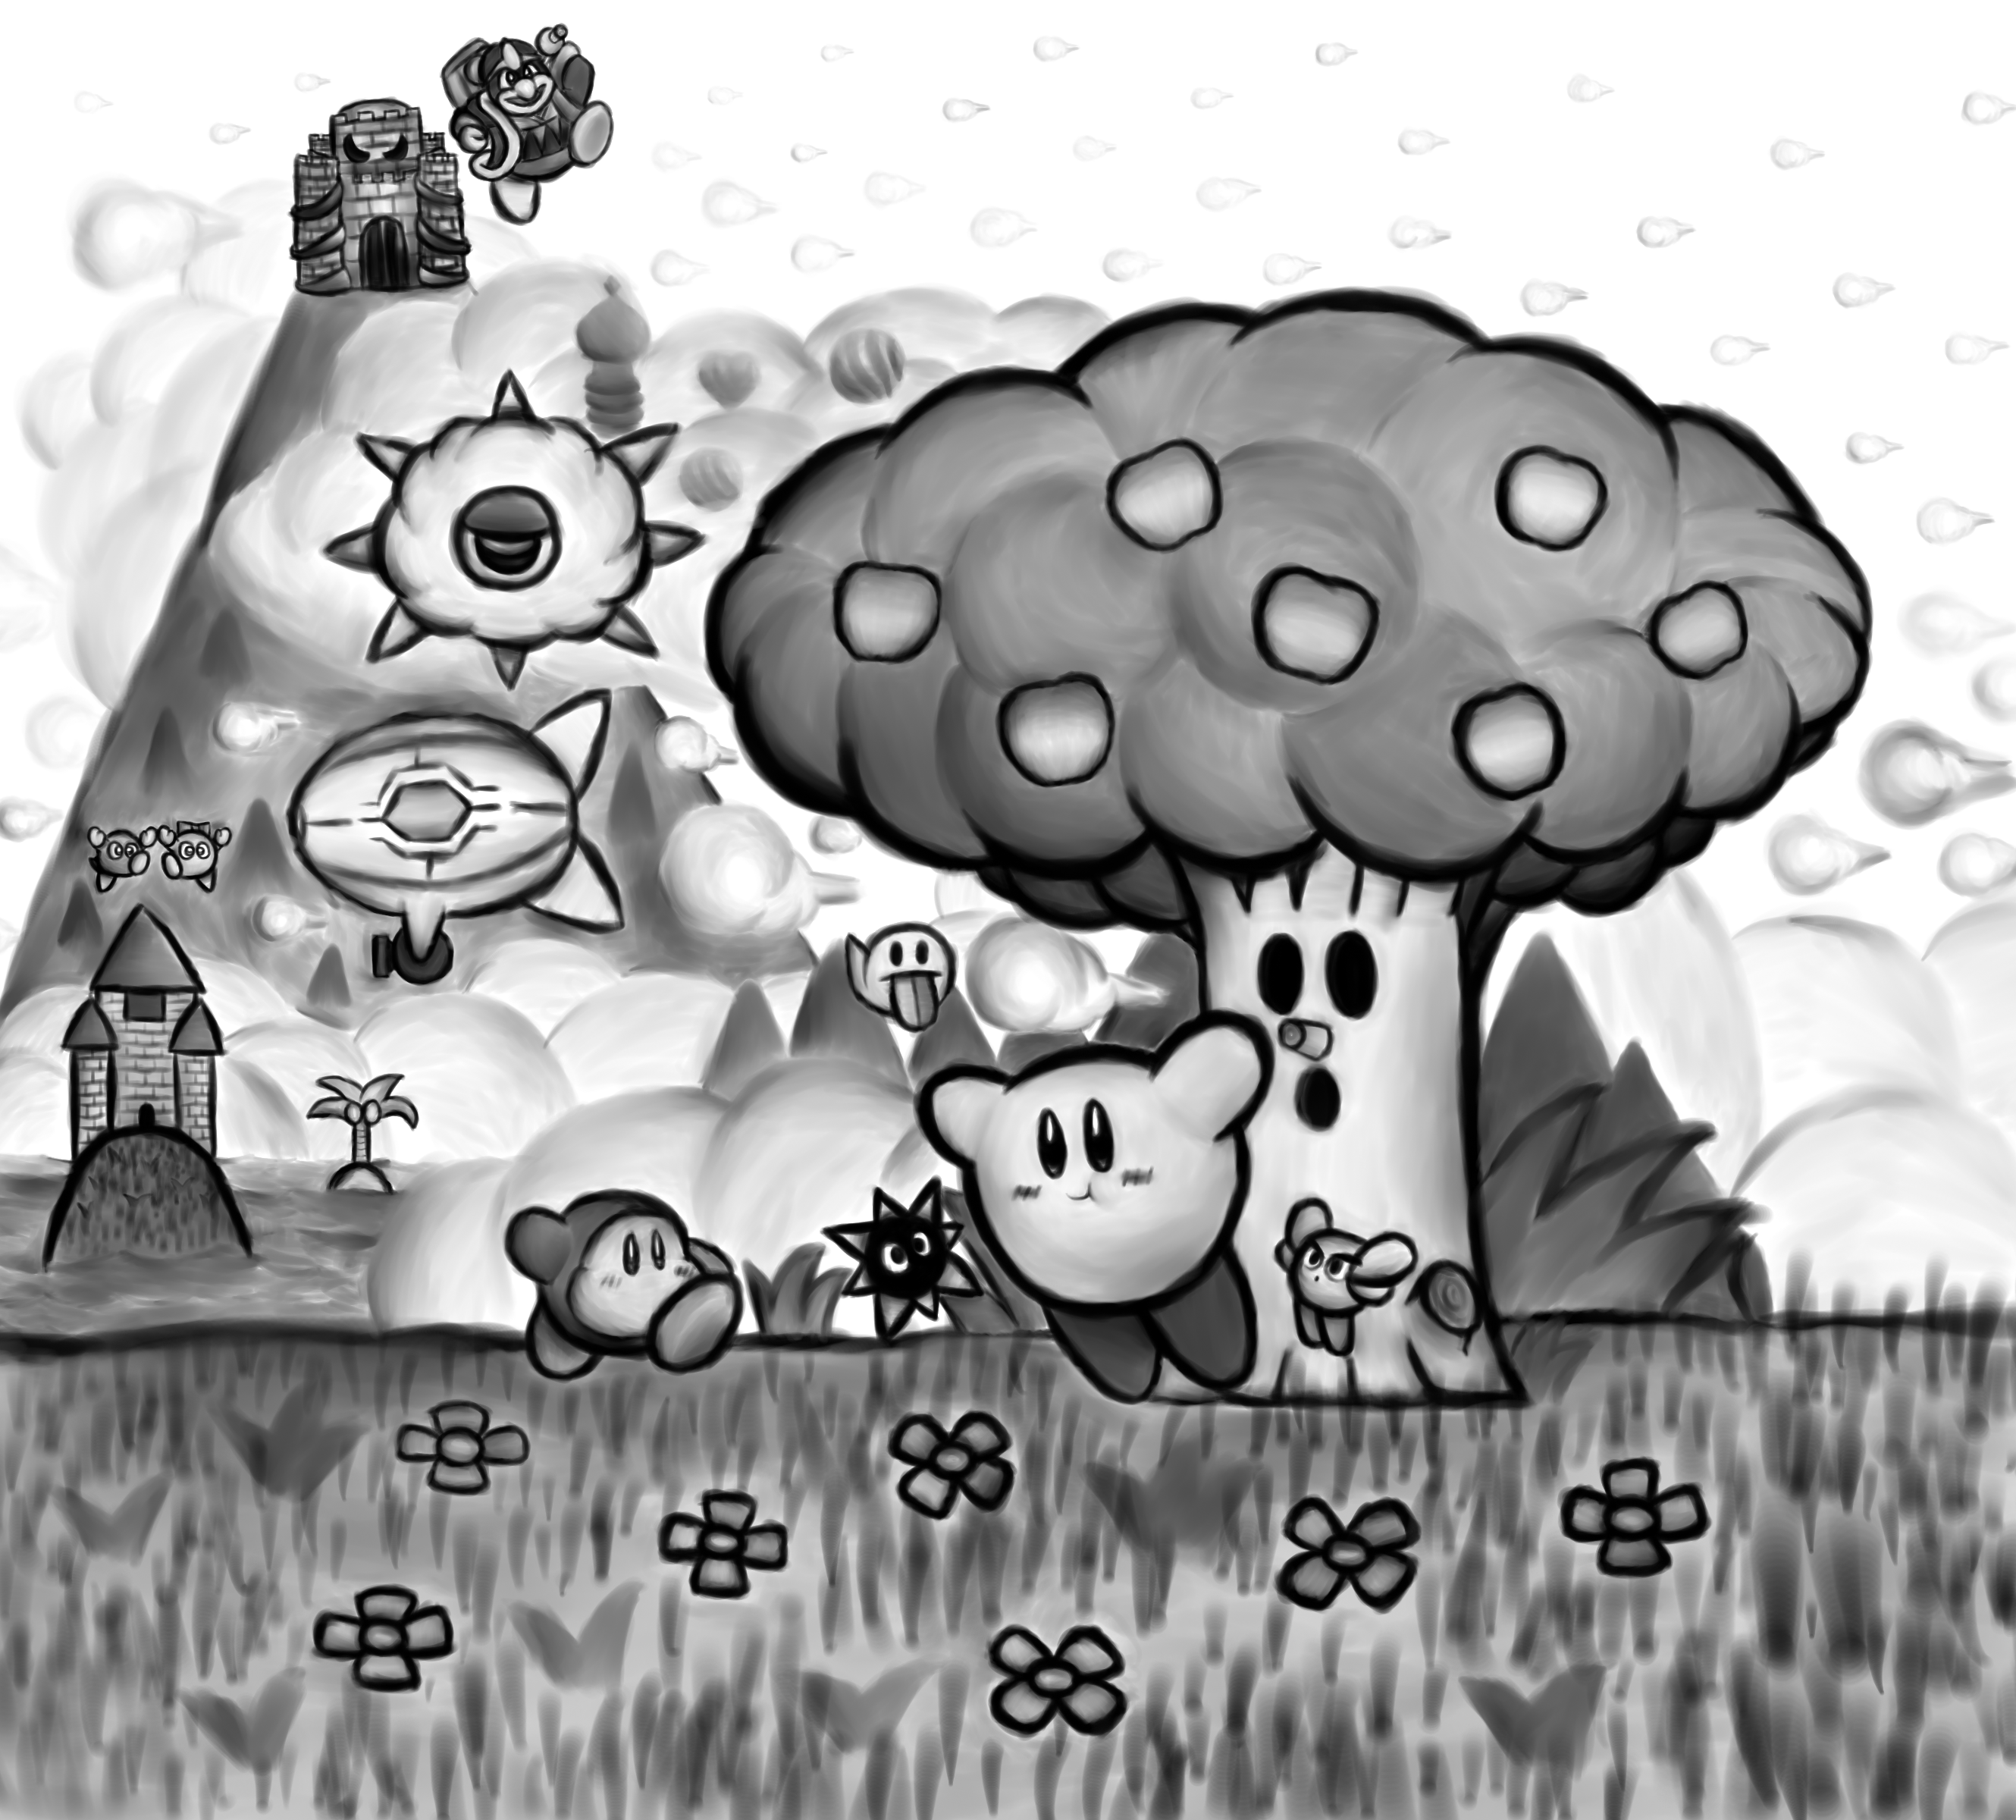 Dreams that Began in Black and White (Kirby 25th)